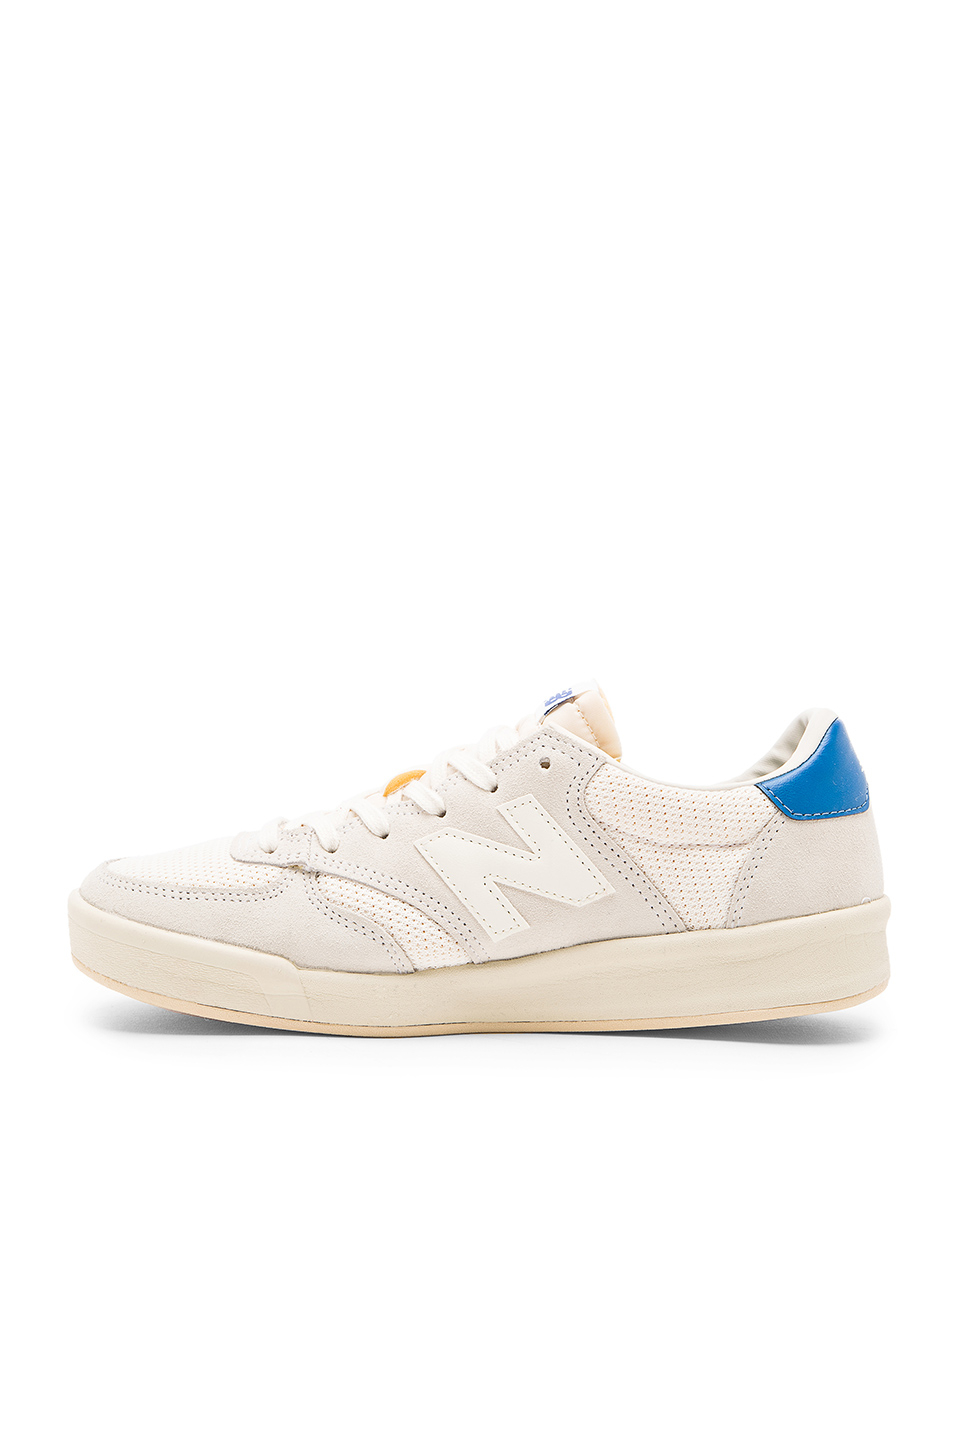 New BalanceCRT300 - Trainers - white qestfTti